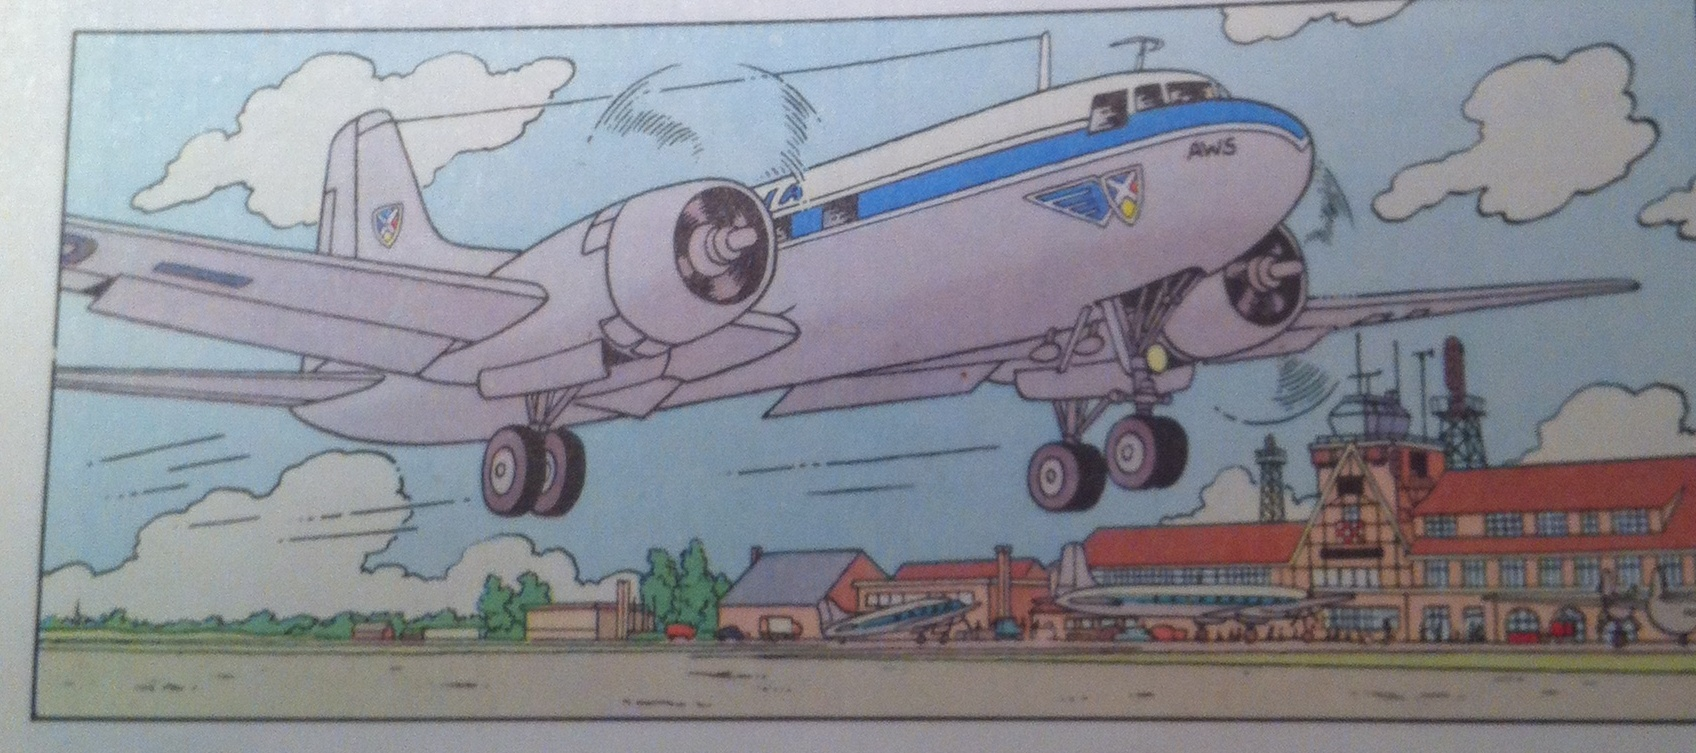 Being Belgian, Tintin's Sabena flight was not totally unexpected!